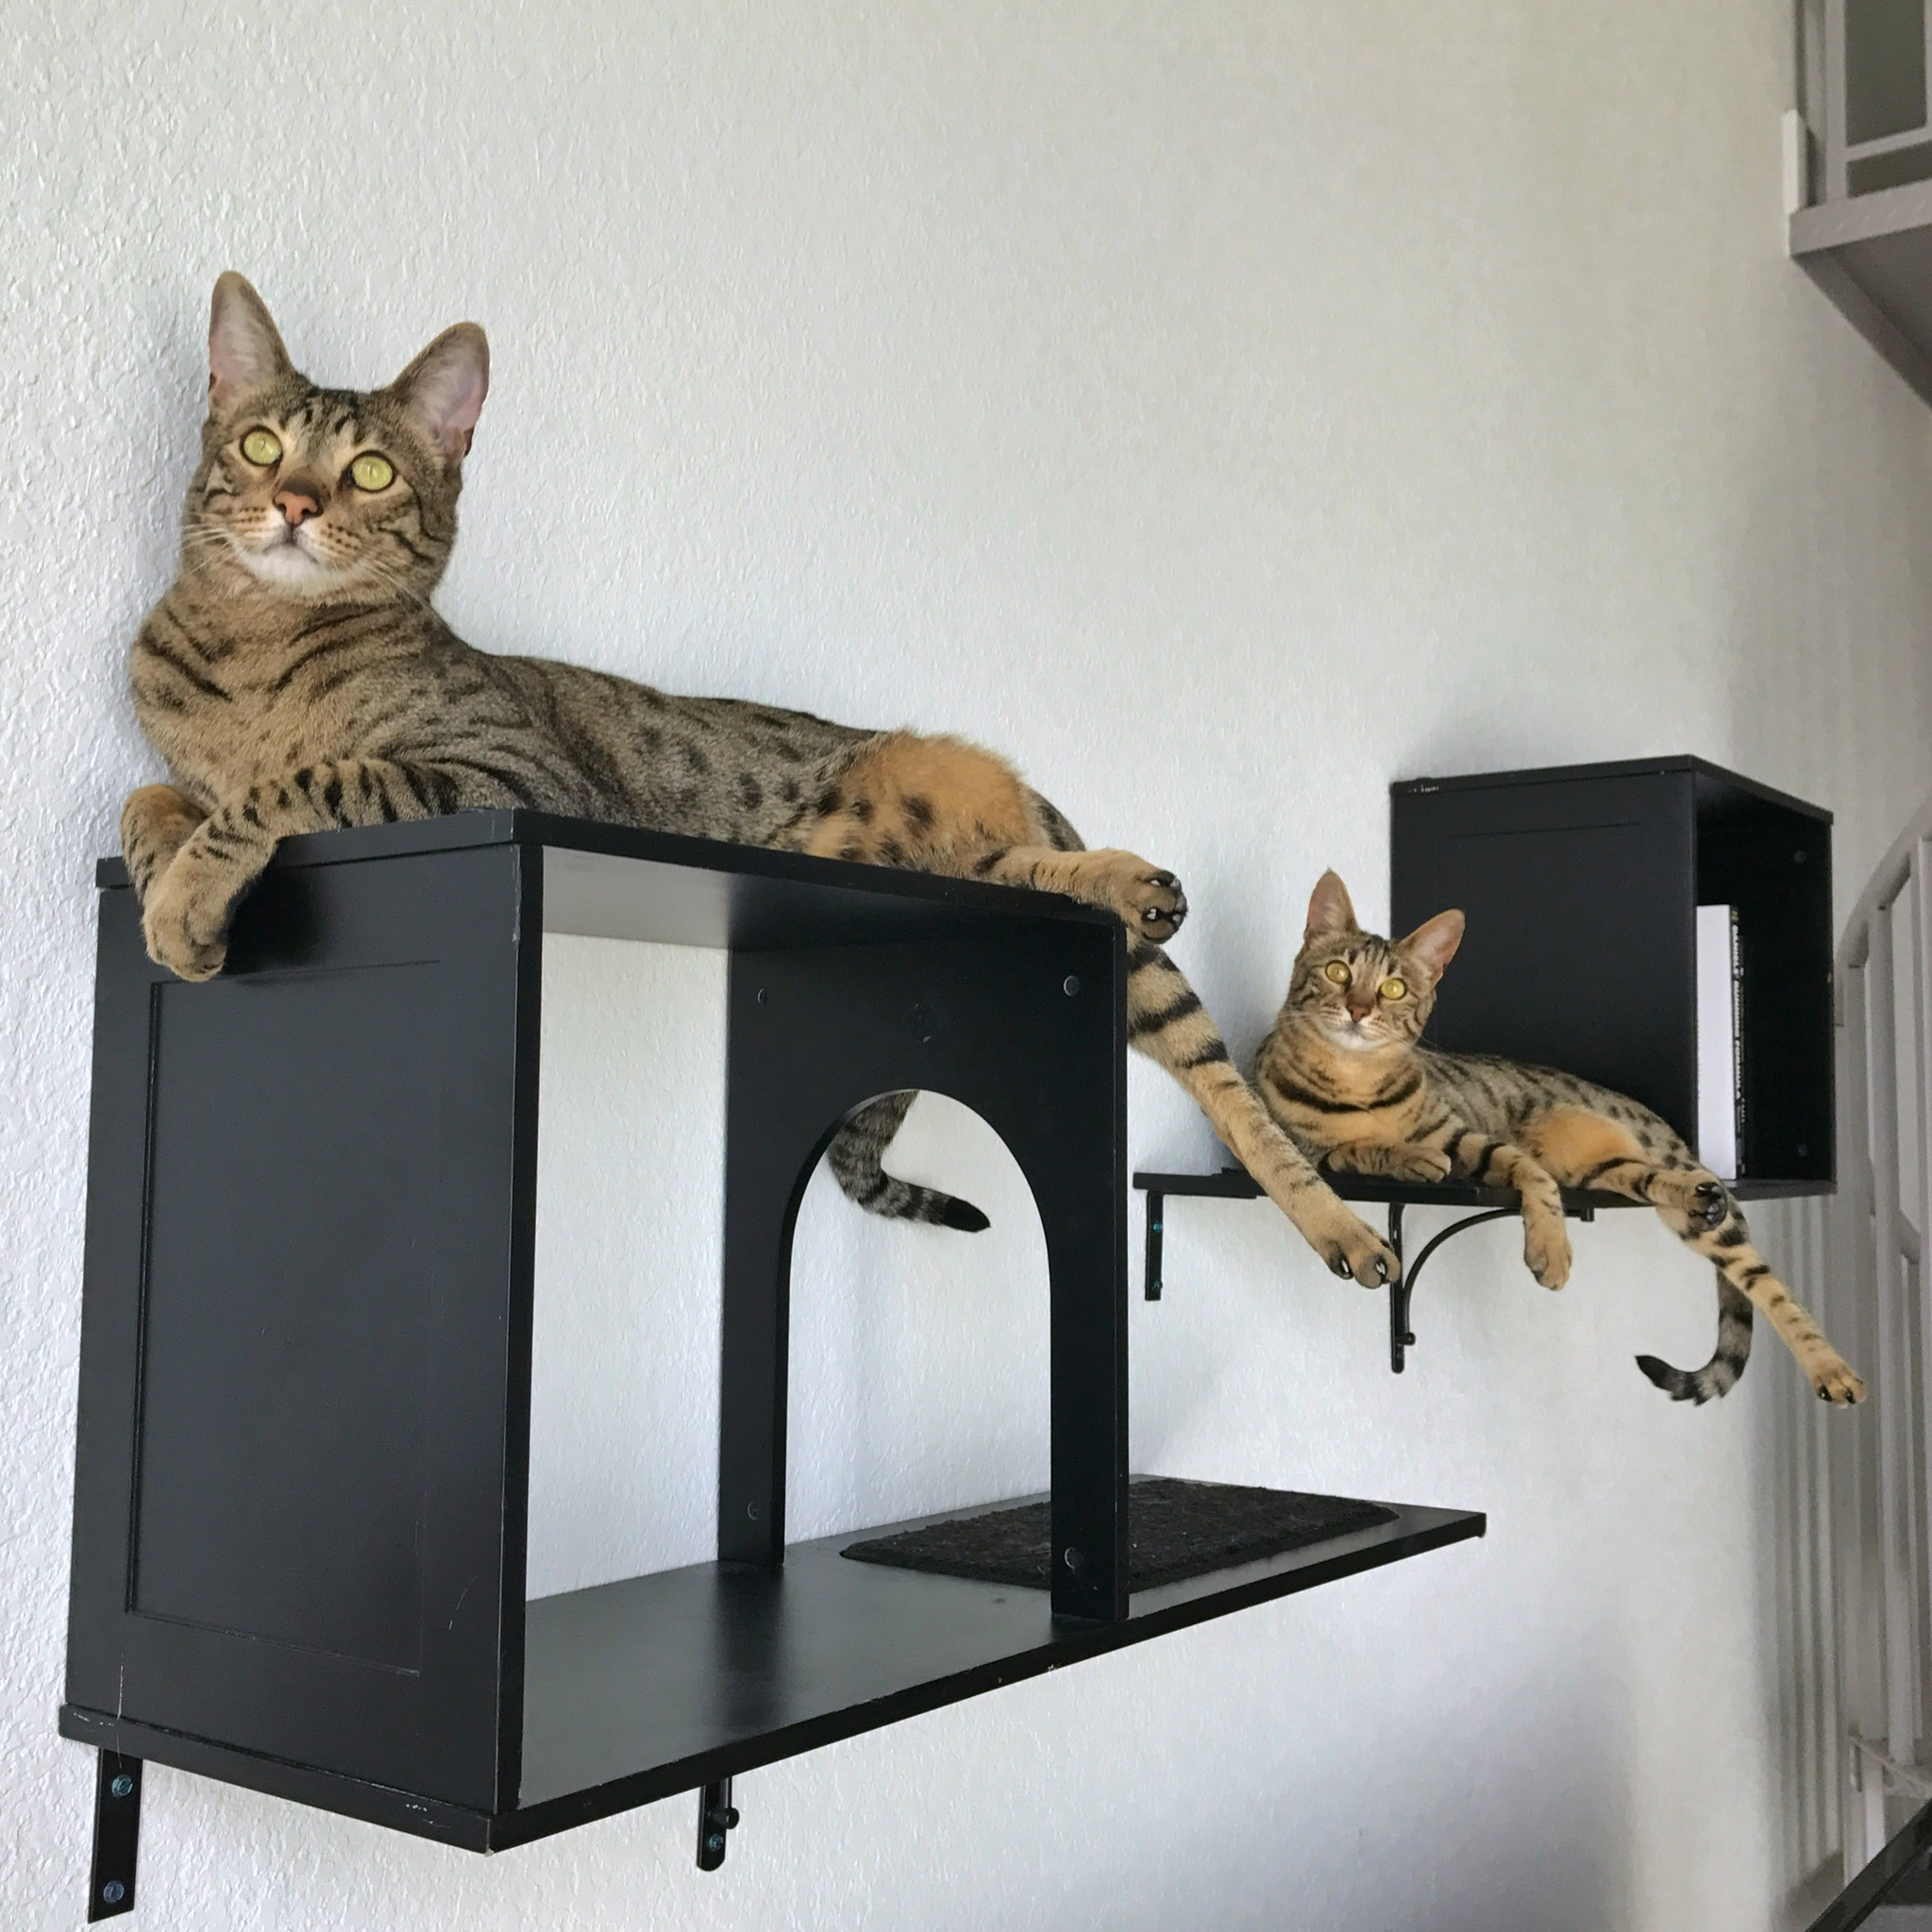 Sophia wall mounted cat tree review kitty loaf - Wall mounted cat climber ...